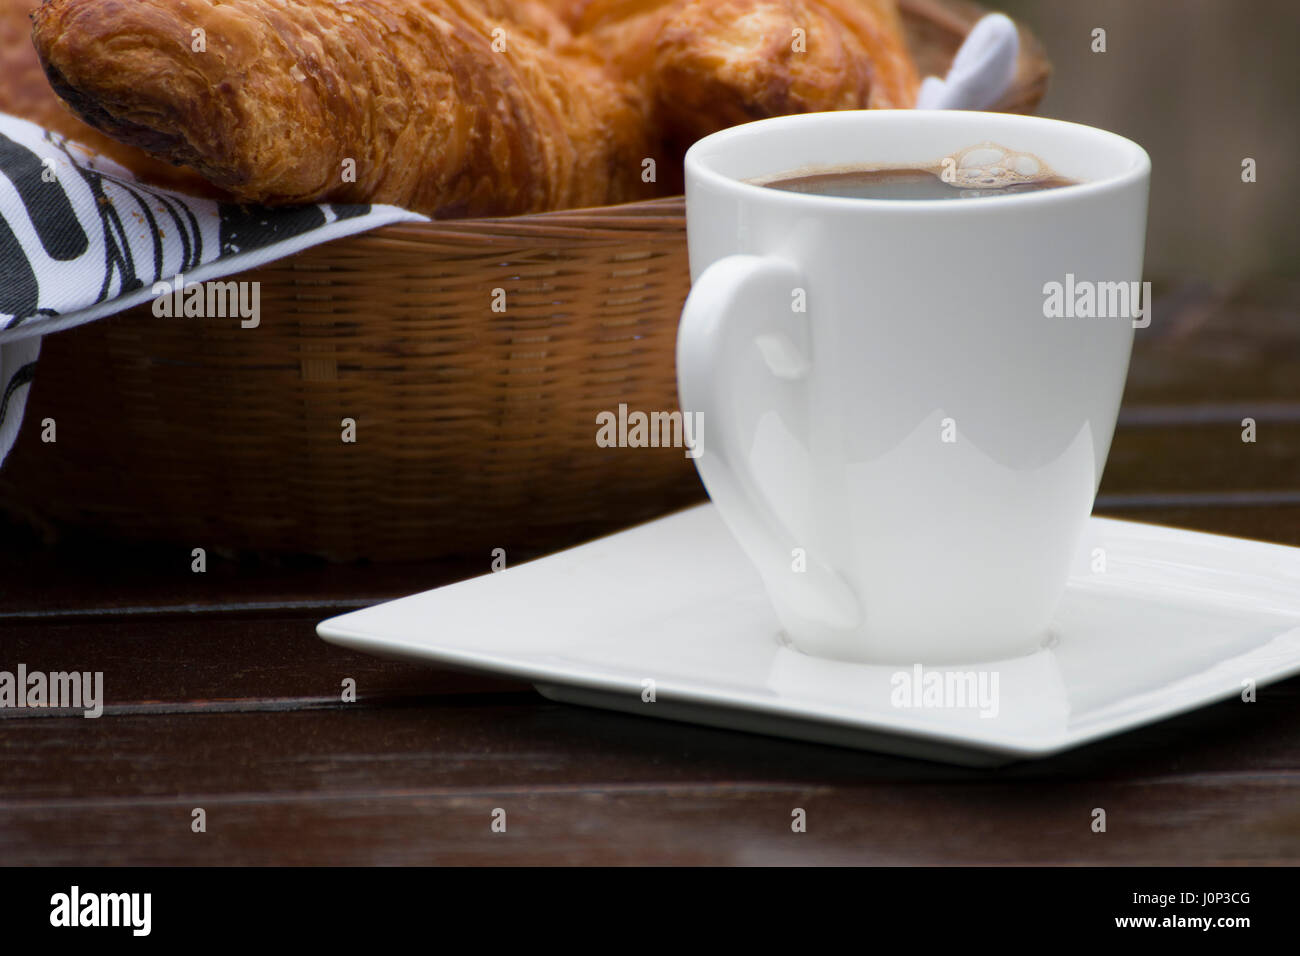 A cup of coffee near a basket with french croissants - Stock Image